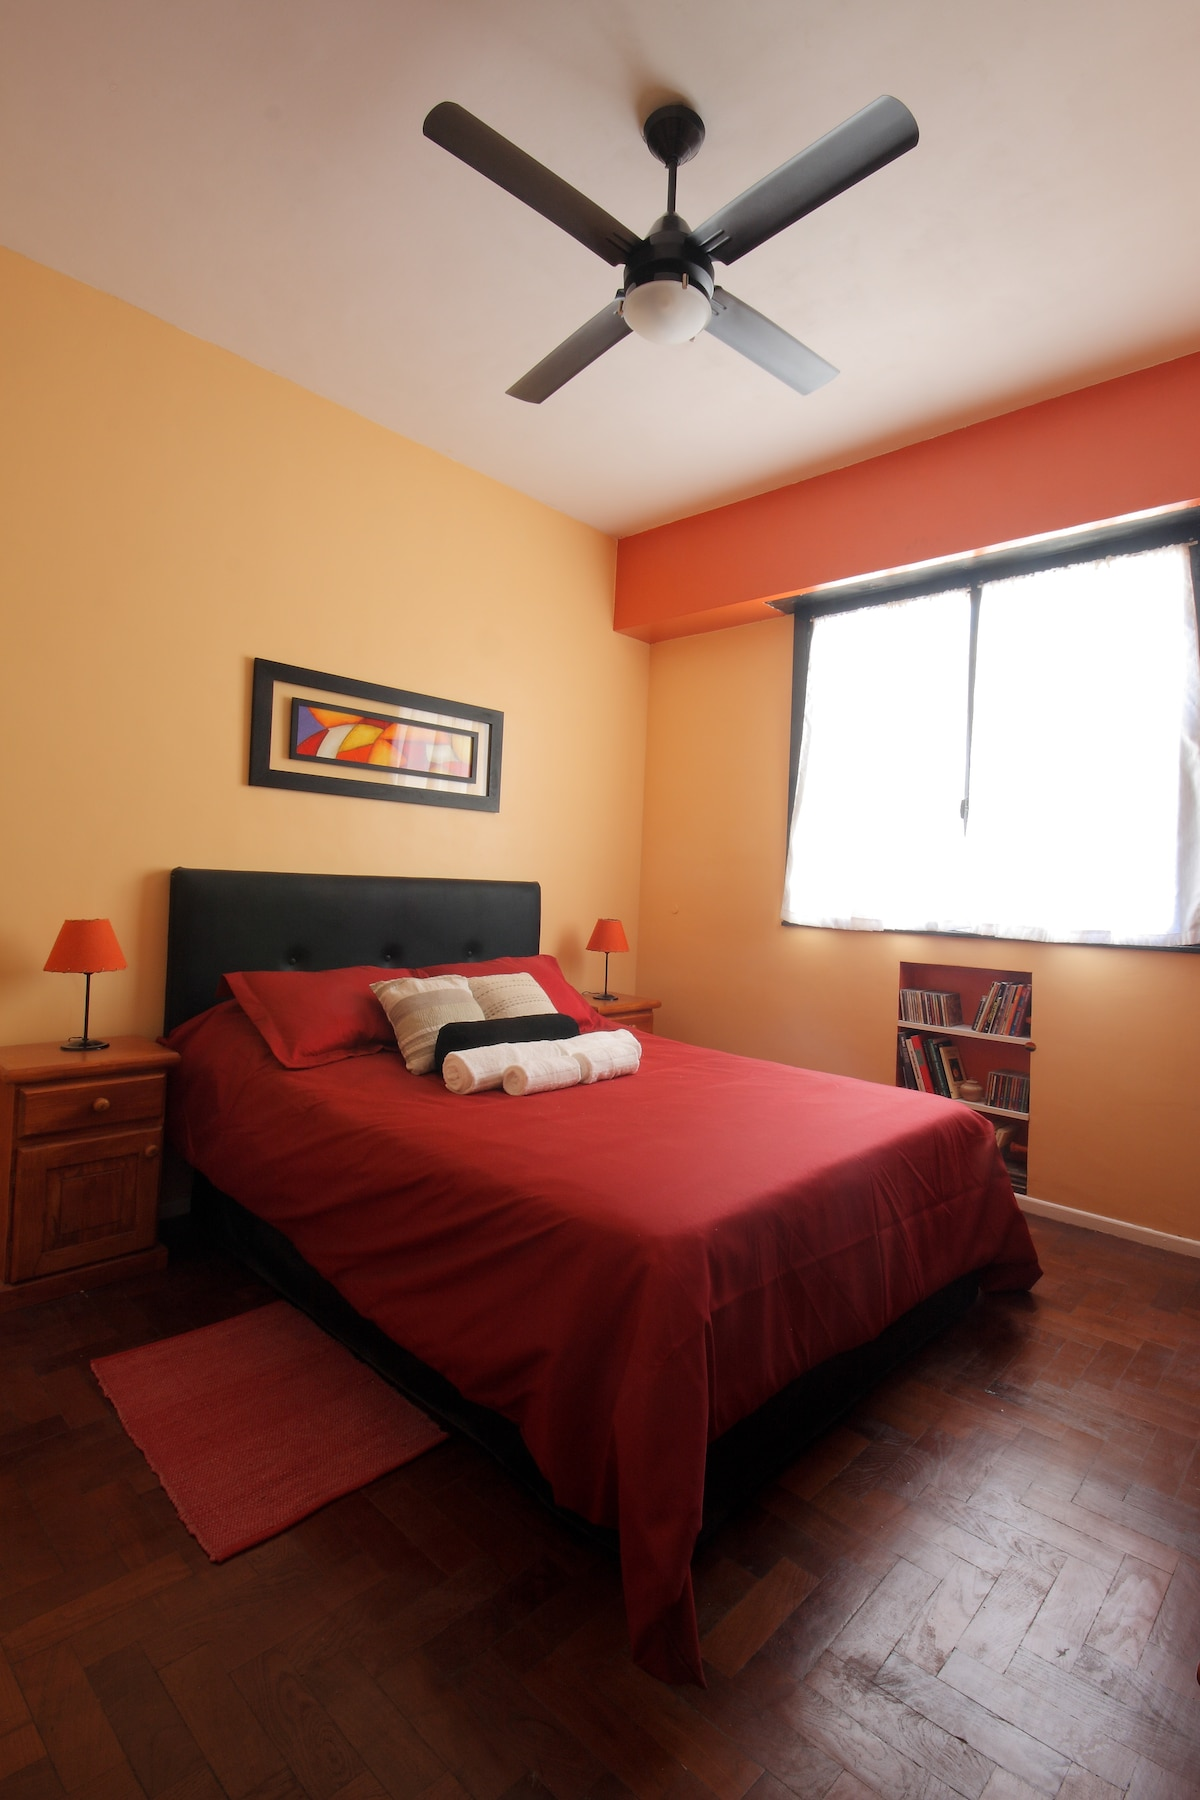 A spacious bedroom with all the comfort you deserve!